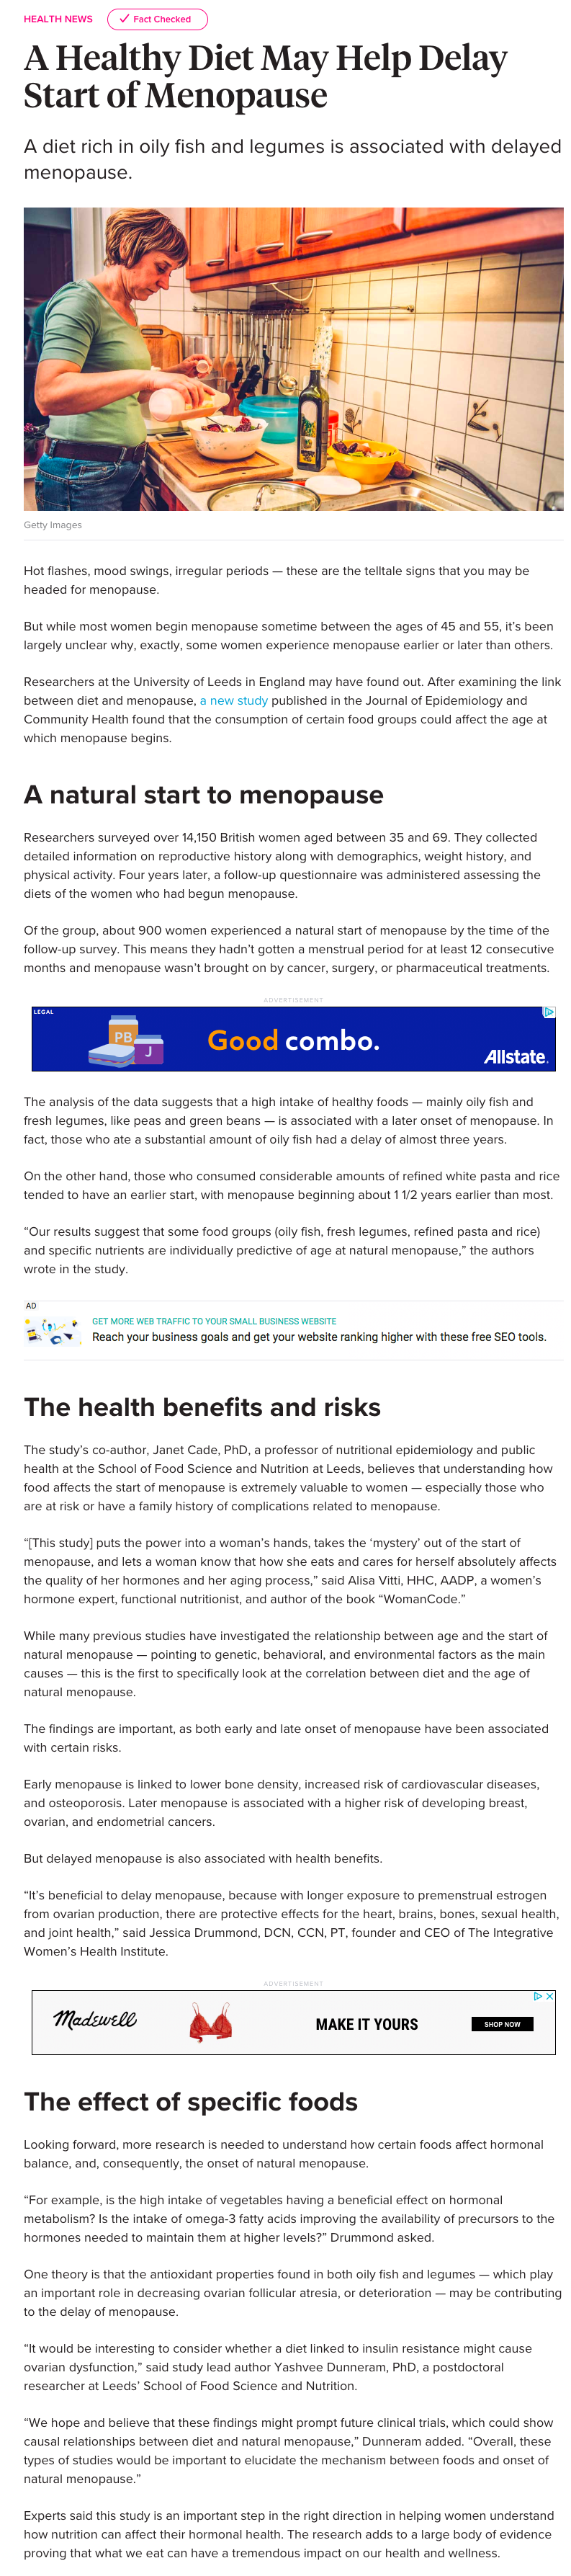 Healthline_A Healthy Diet May Help Delay Start of Menopause.png